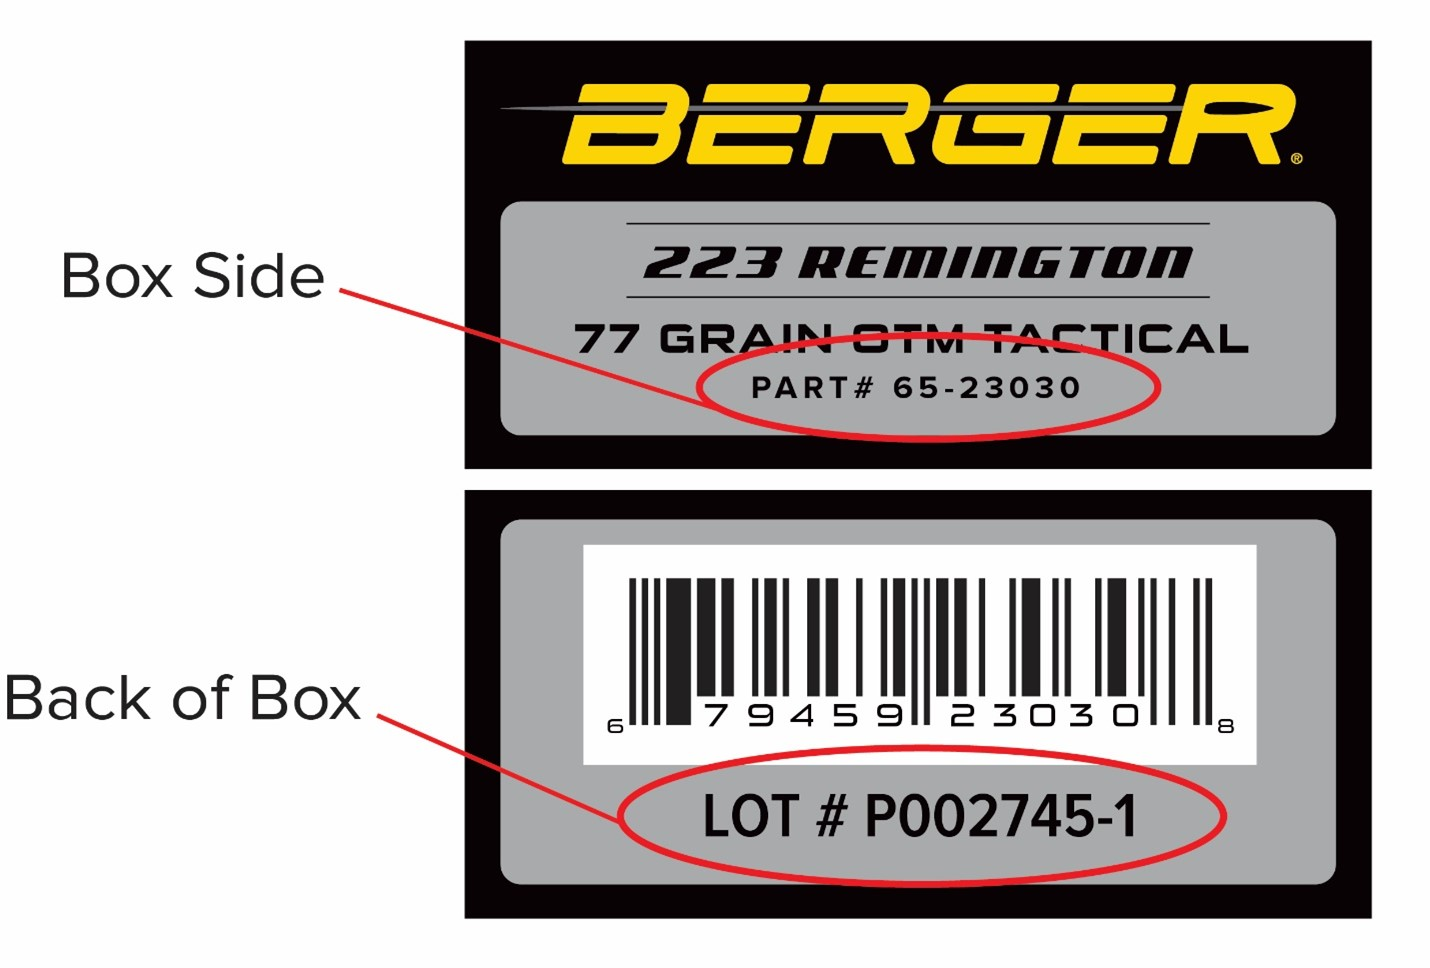 How to find the lot number info printed on the ammo boxes, to determine whether or not any of your 77-grain OTM Tactical ammo may be affected by this recall.